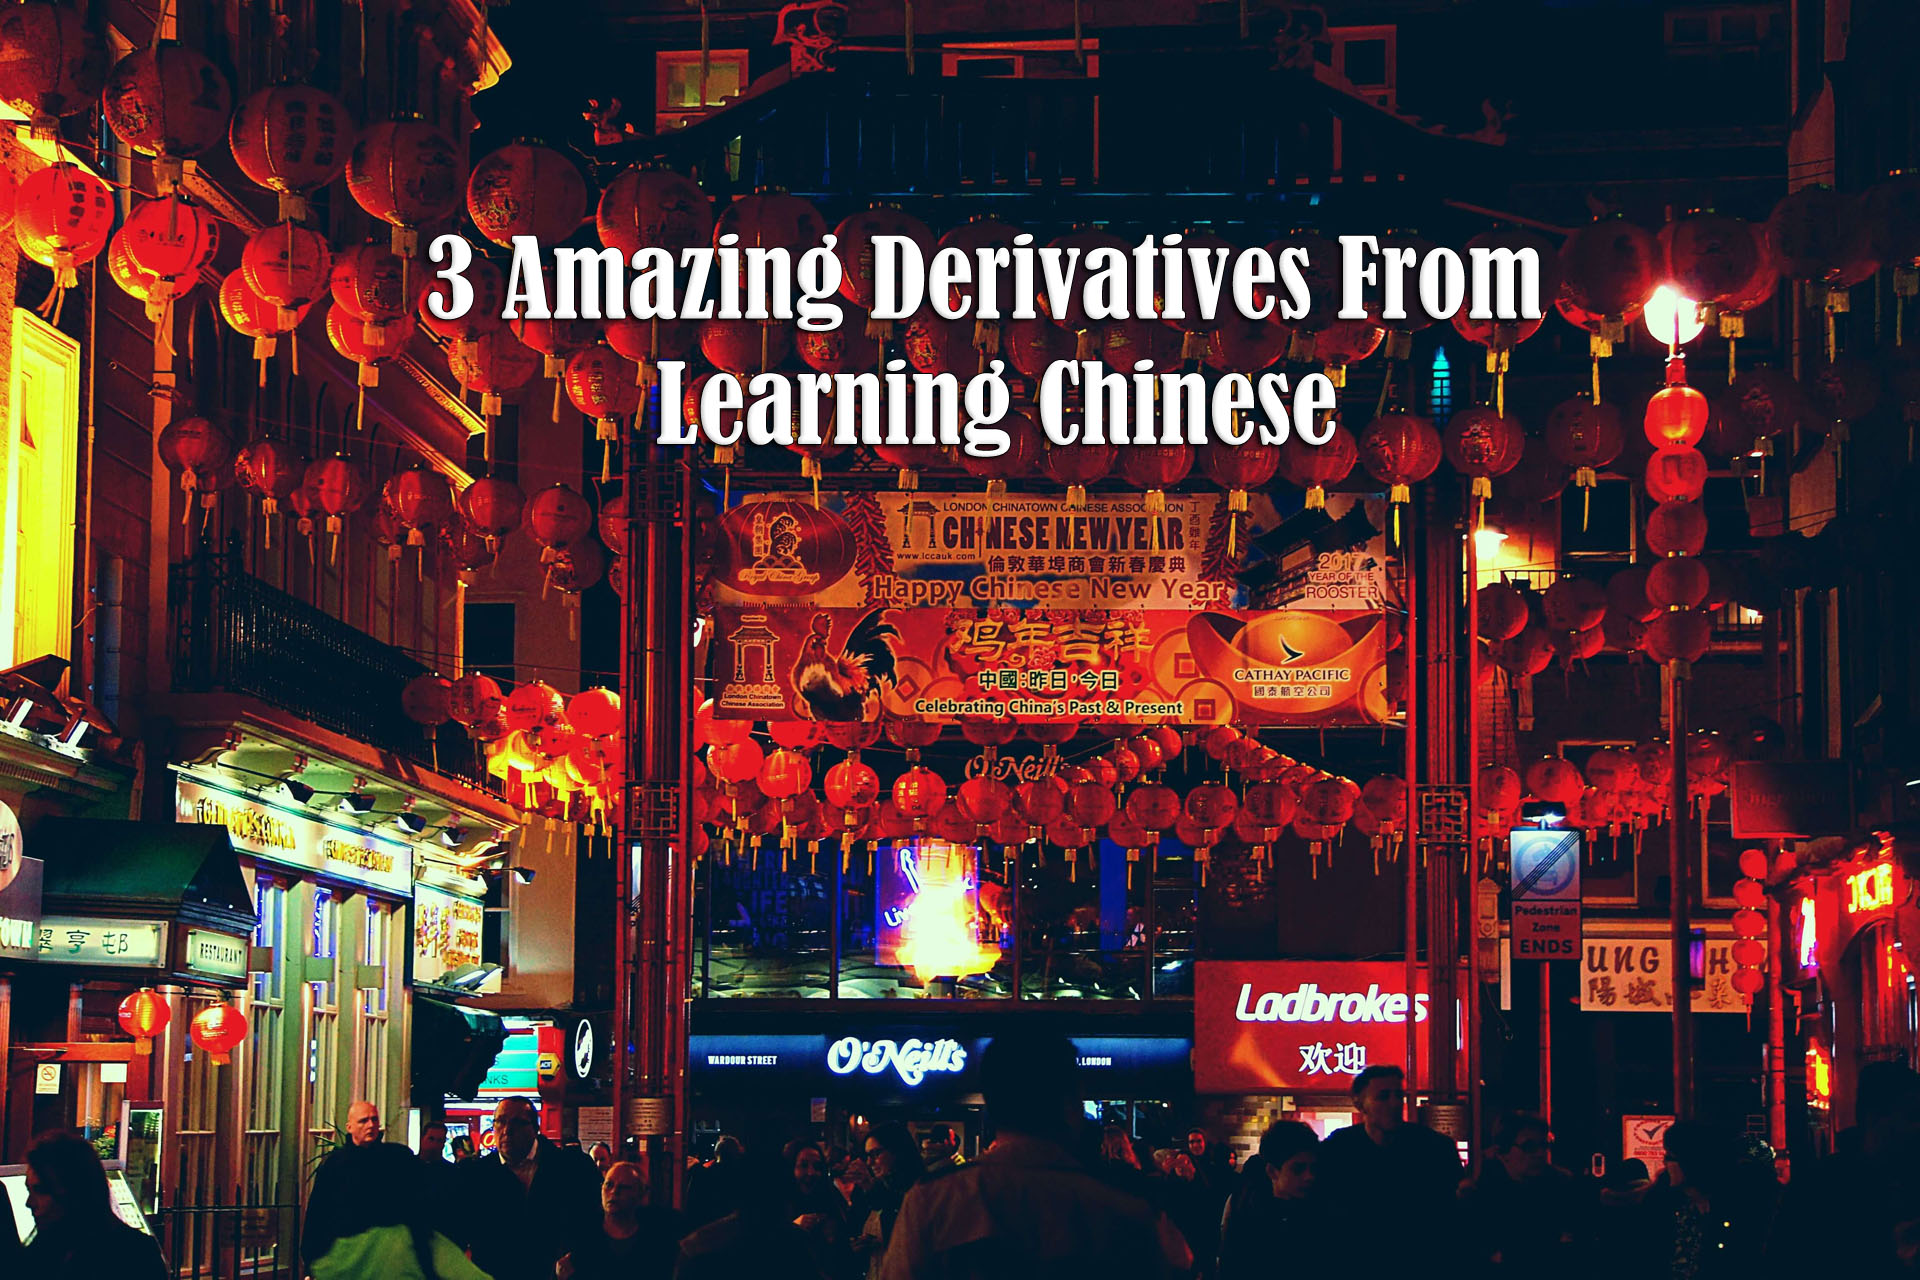 3 Amazing Derivatives From Learning Chinese